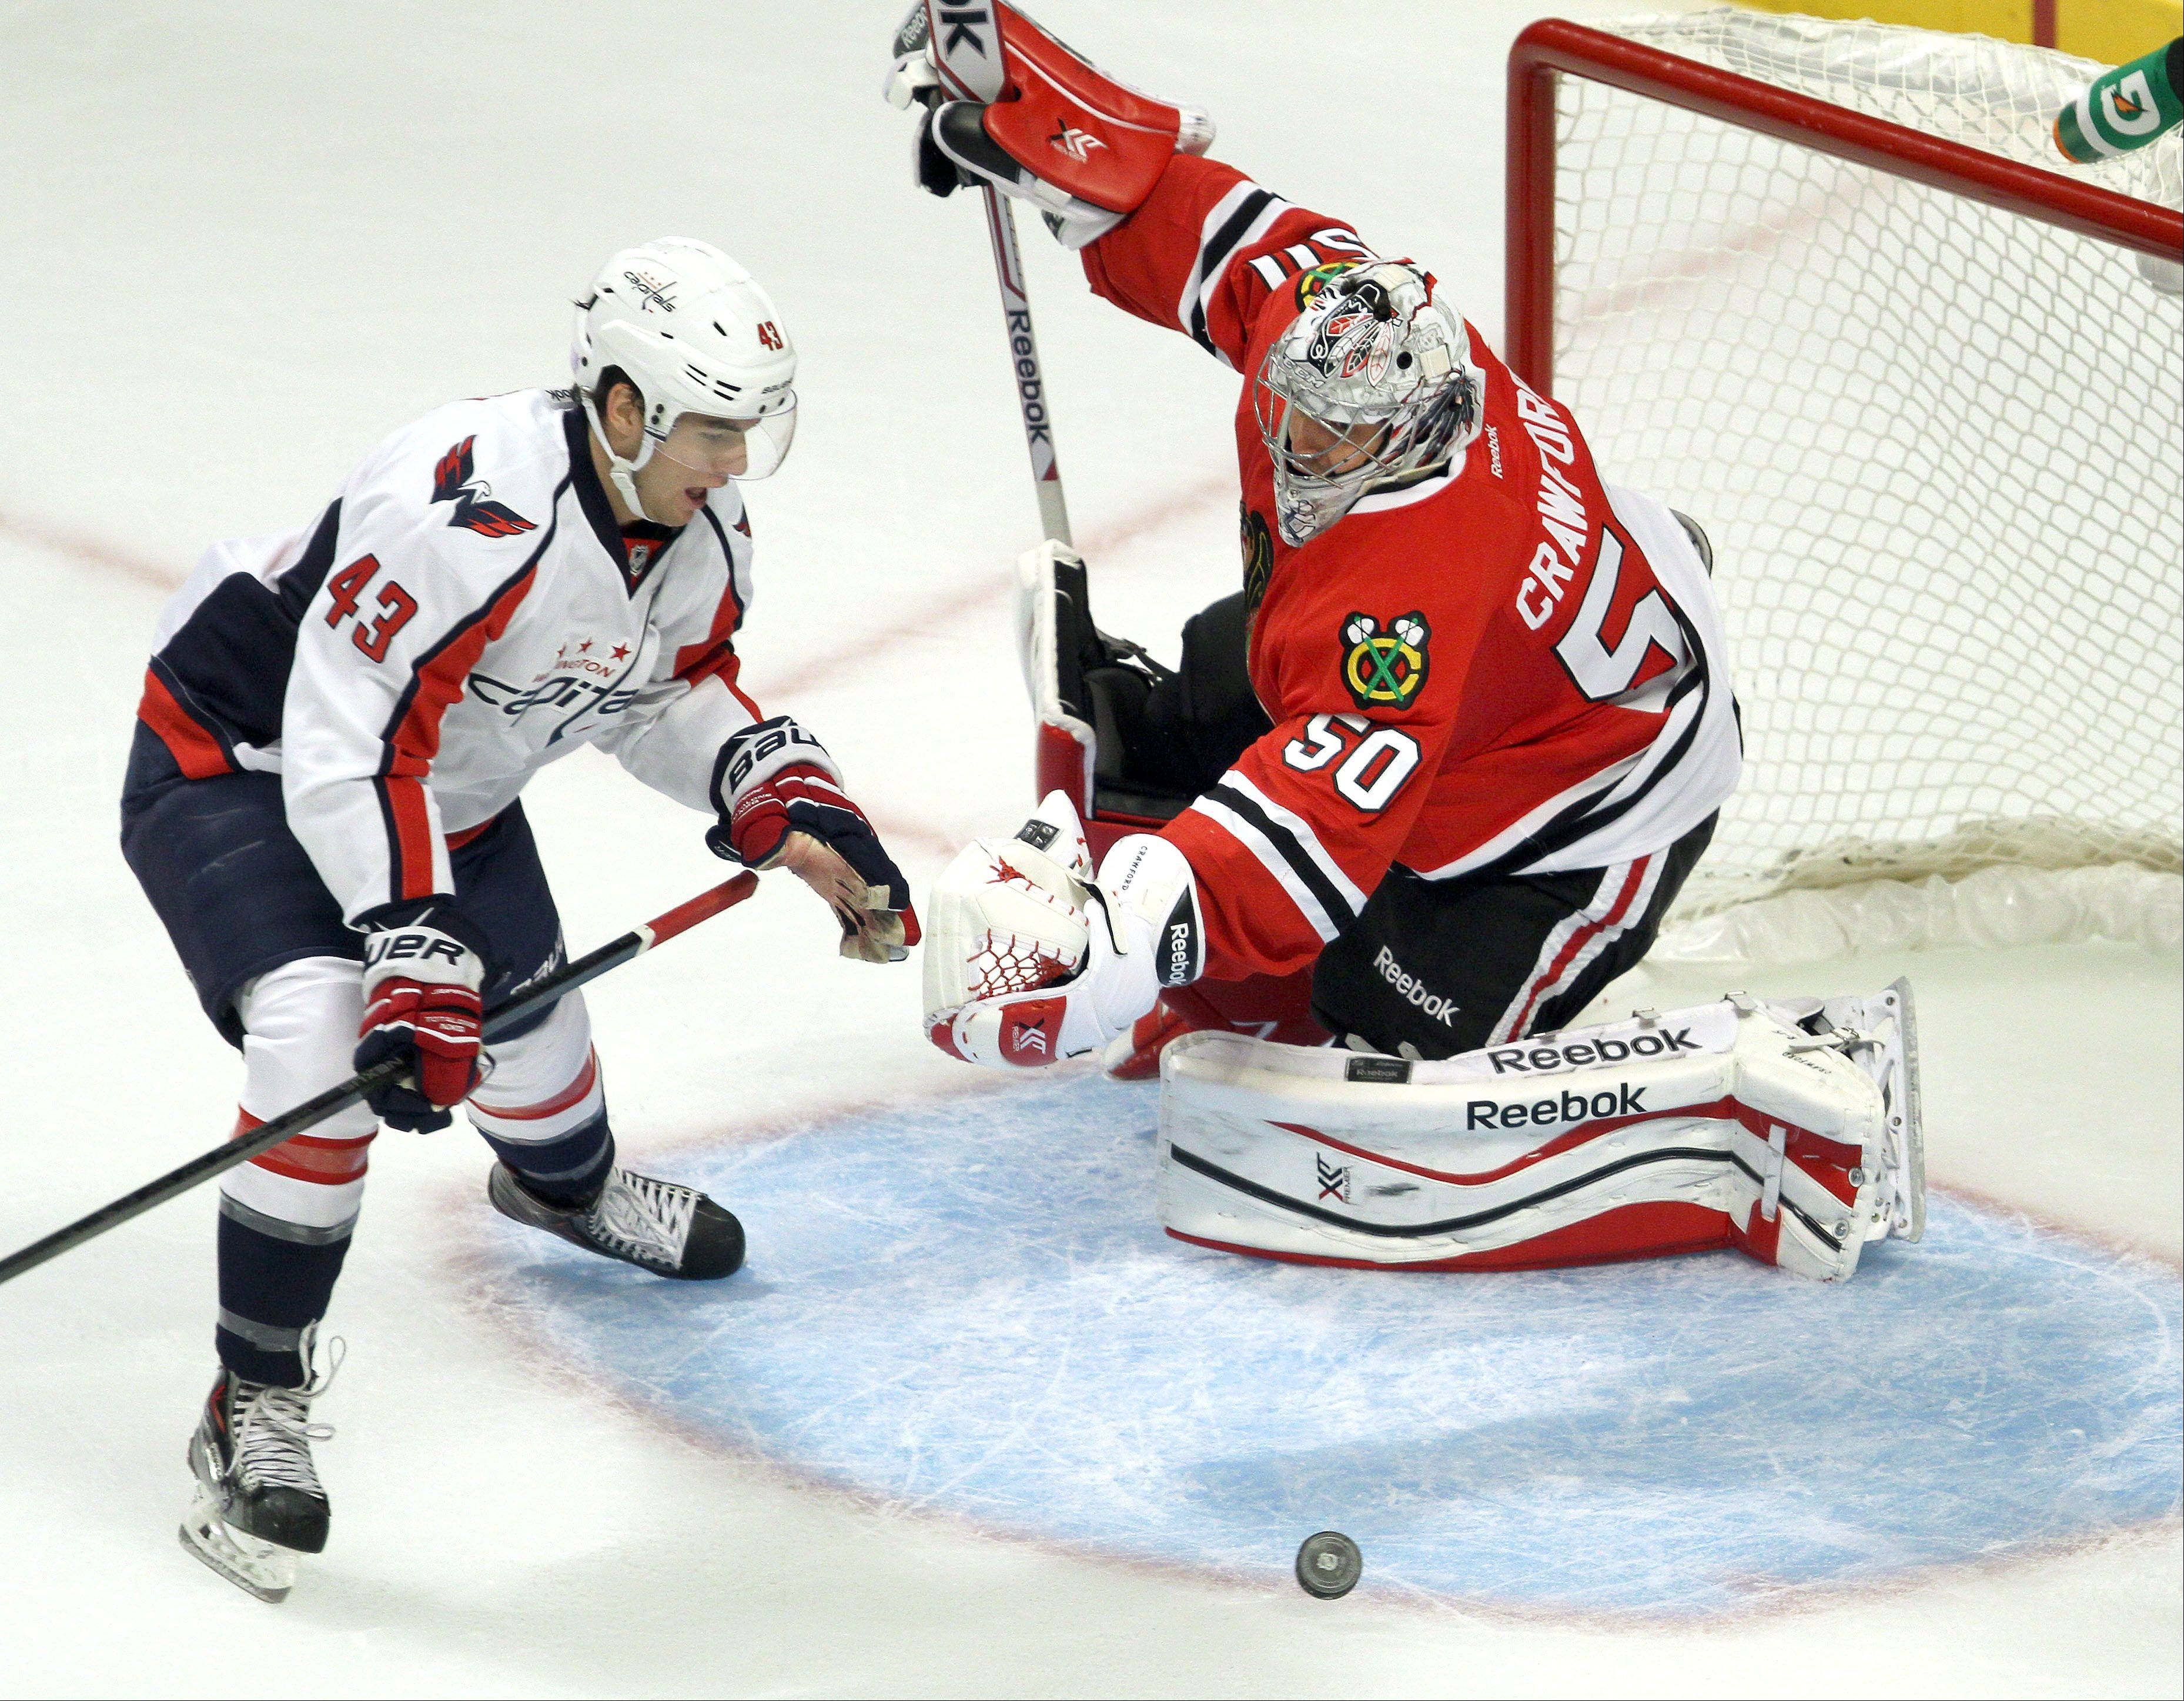 Chicago Blackhawks goalie Corey Crawford makes a save on Washington Capitals right wing Tom Wilson.